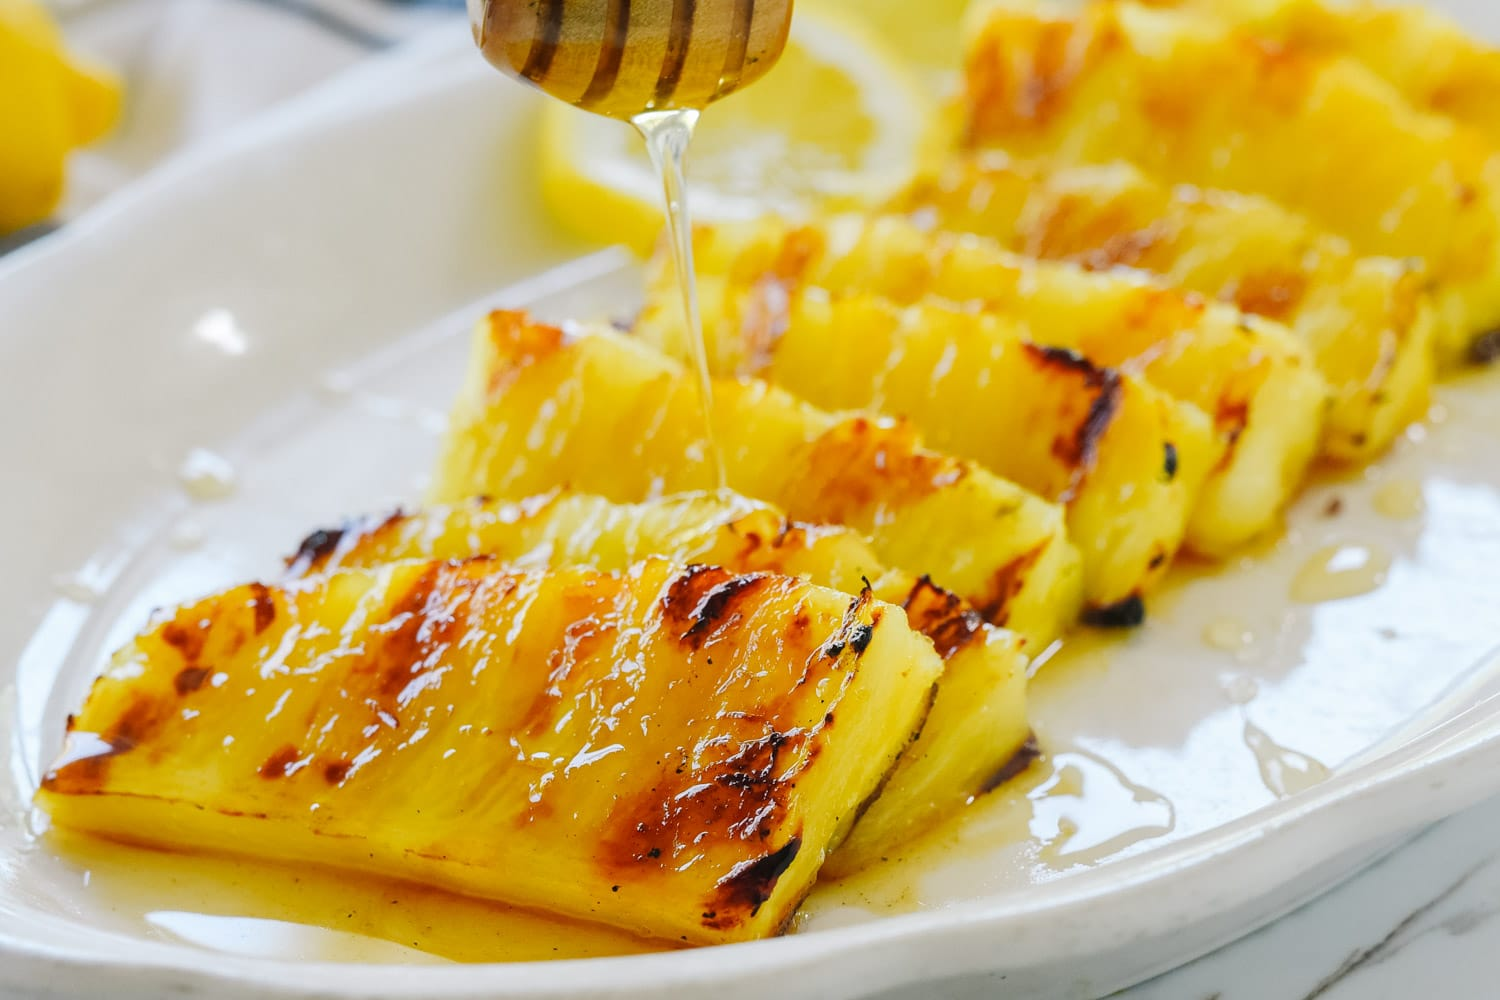 Drizzling honey on pineapple